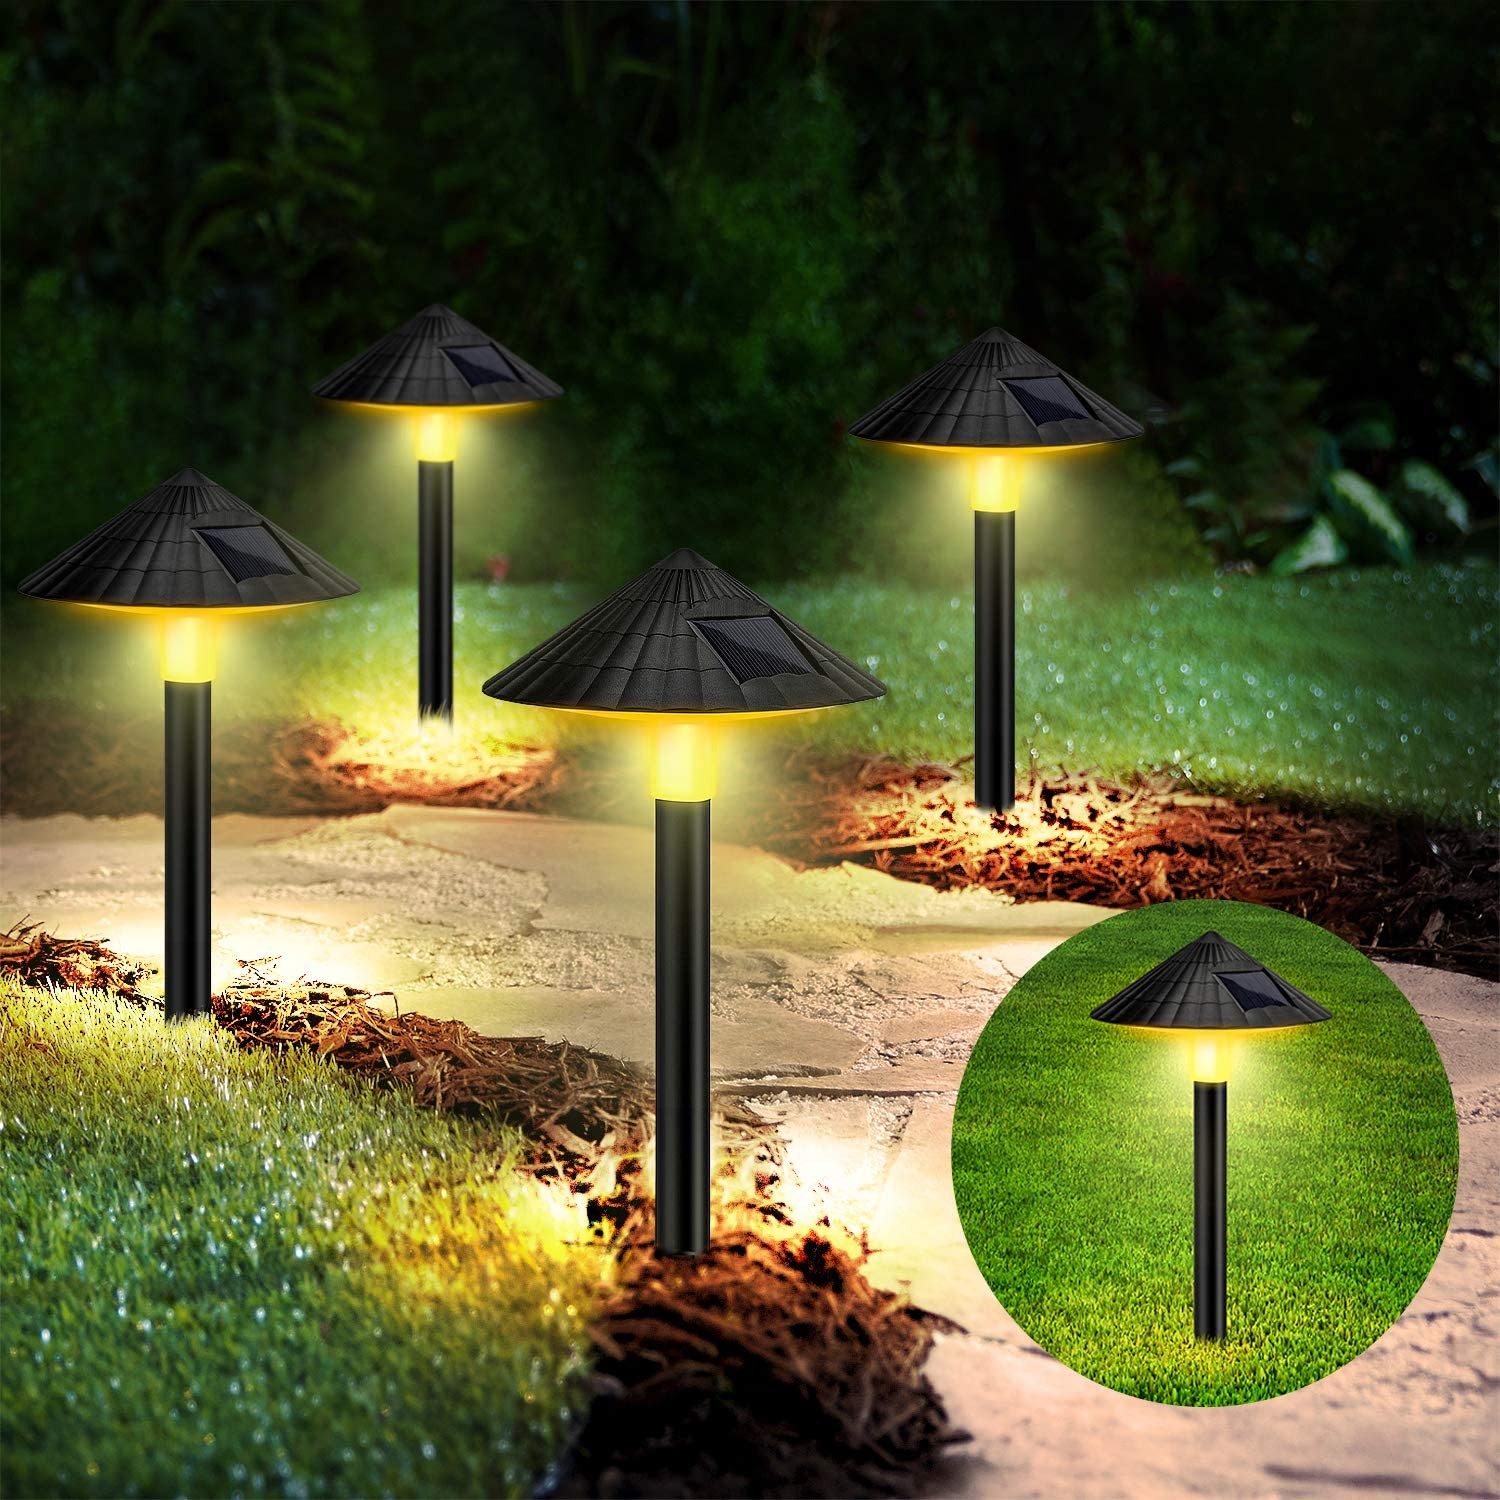 Pathway Lights Solar Powered,4 Pack Solar Waterproof Wireless Outdoor Walkway Lights Auto On/Off Led Lighting Decorations for Yard ,Sidewalks ,Gardens, In-Ground and lawns (Warm White)